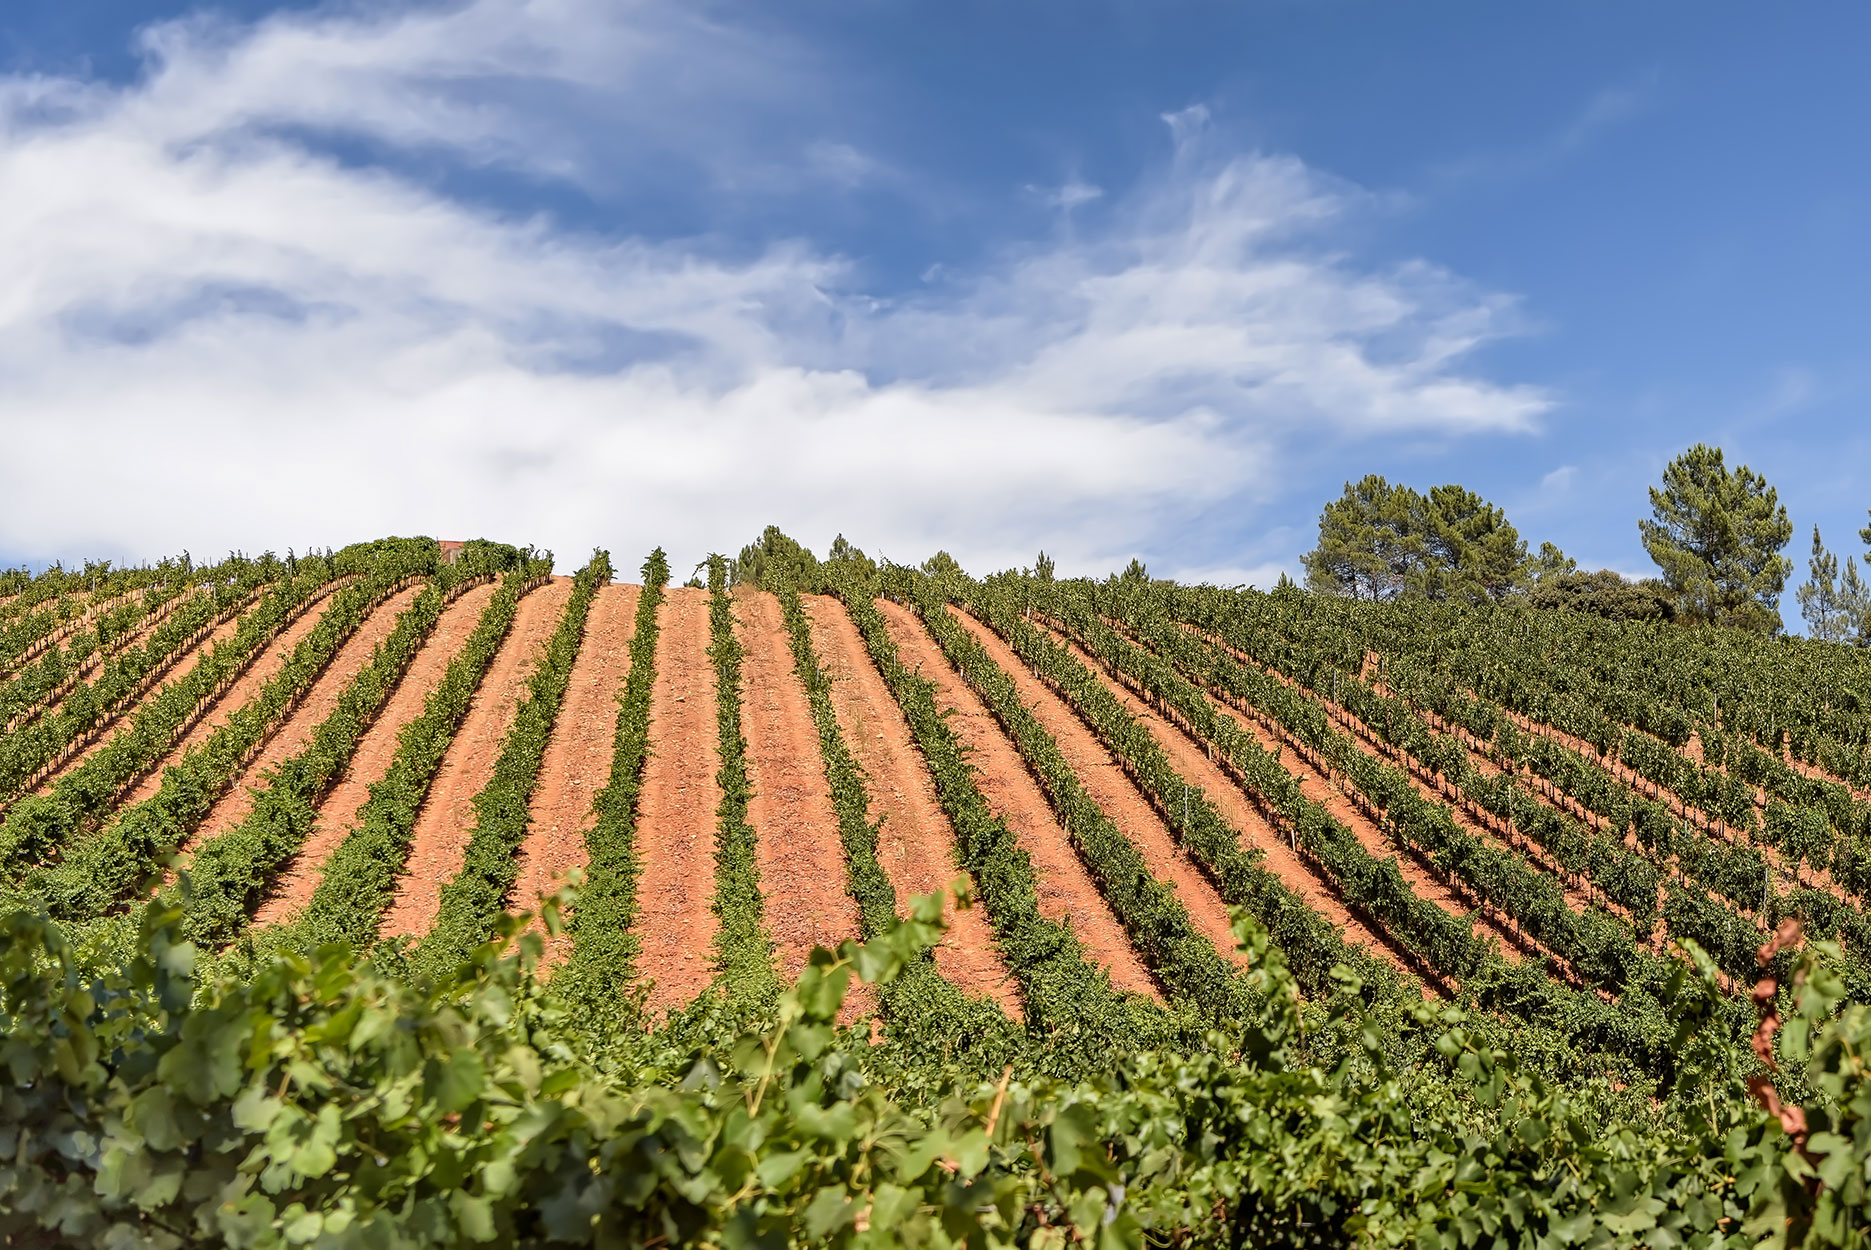 View of vineyards in Spanish winery